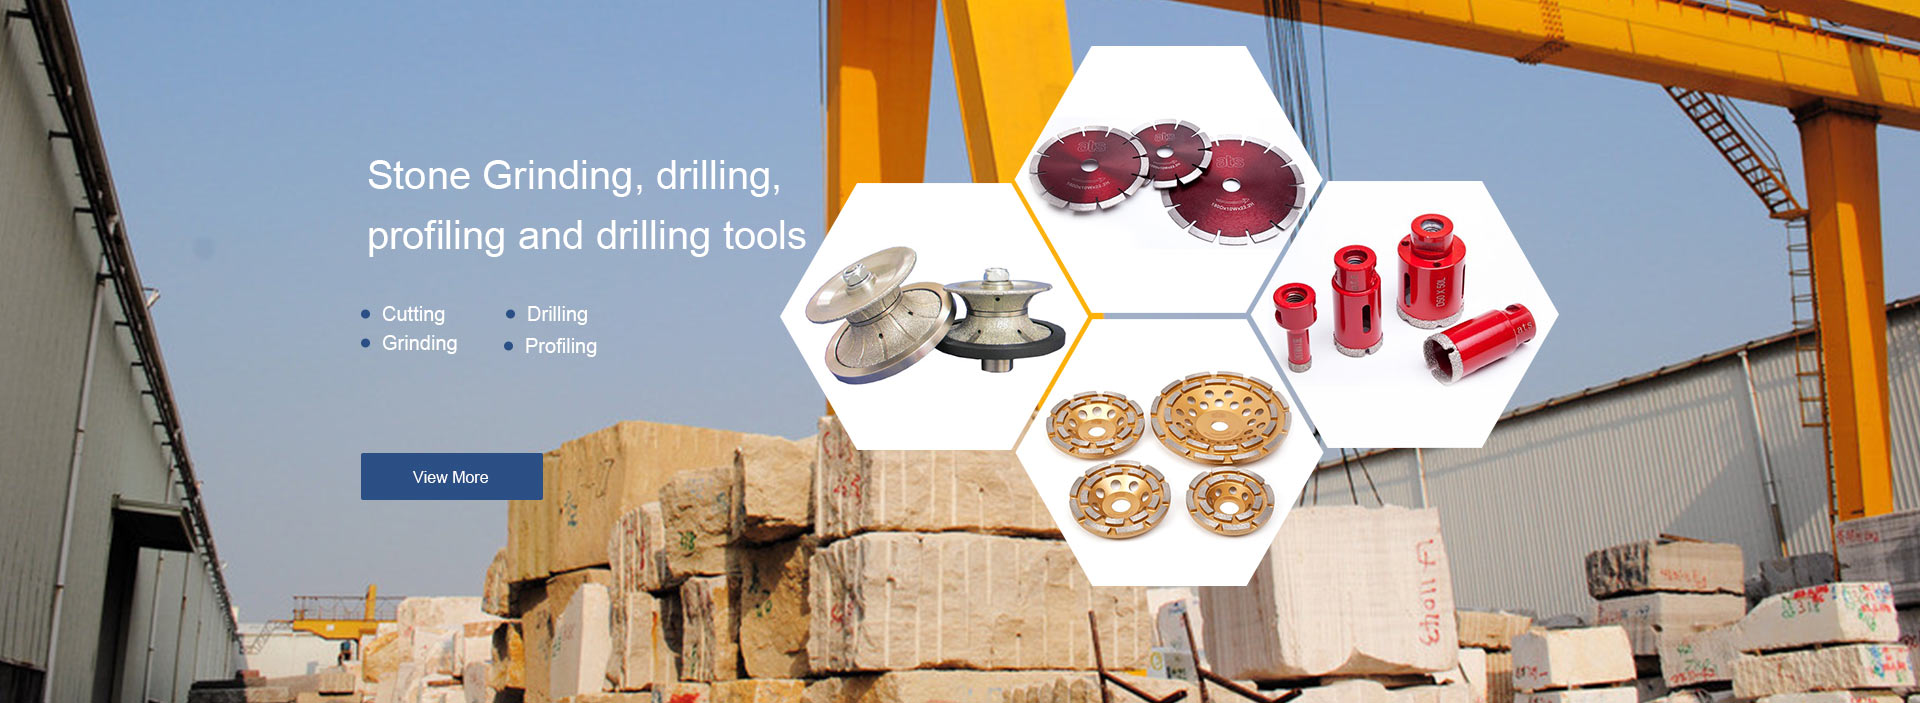 Stone Grinding Tools